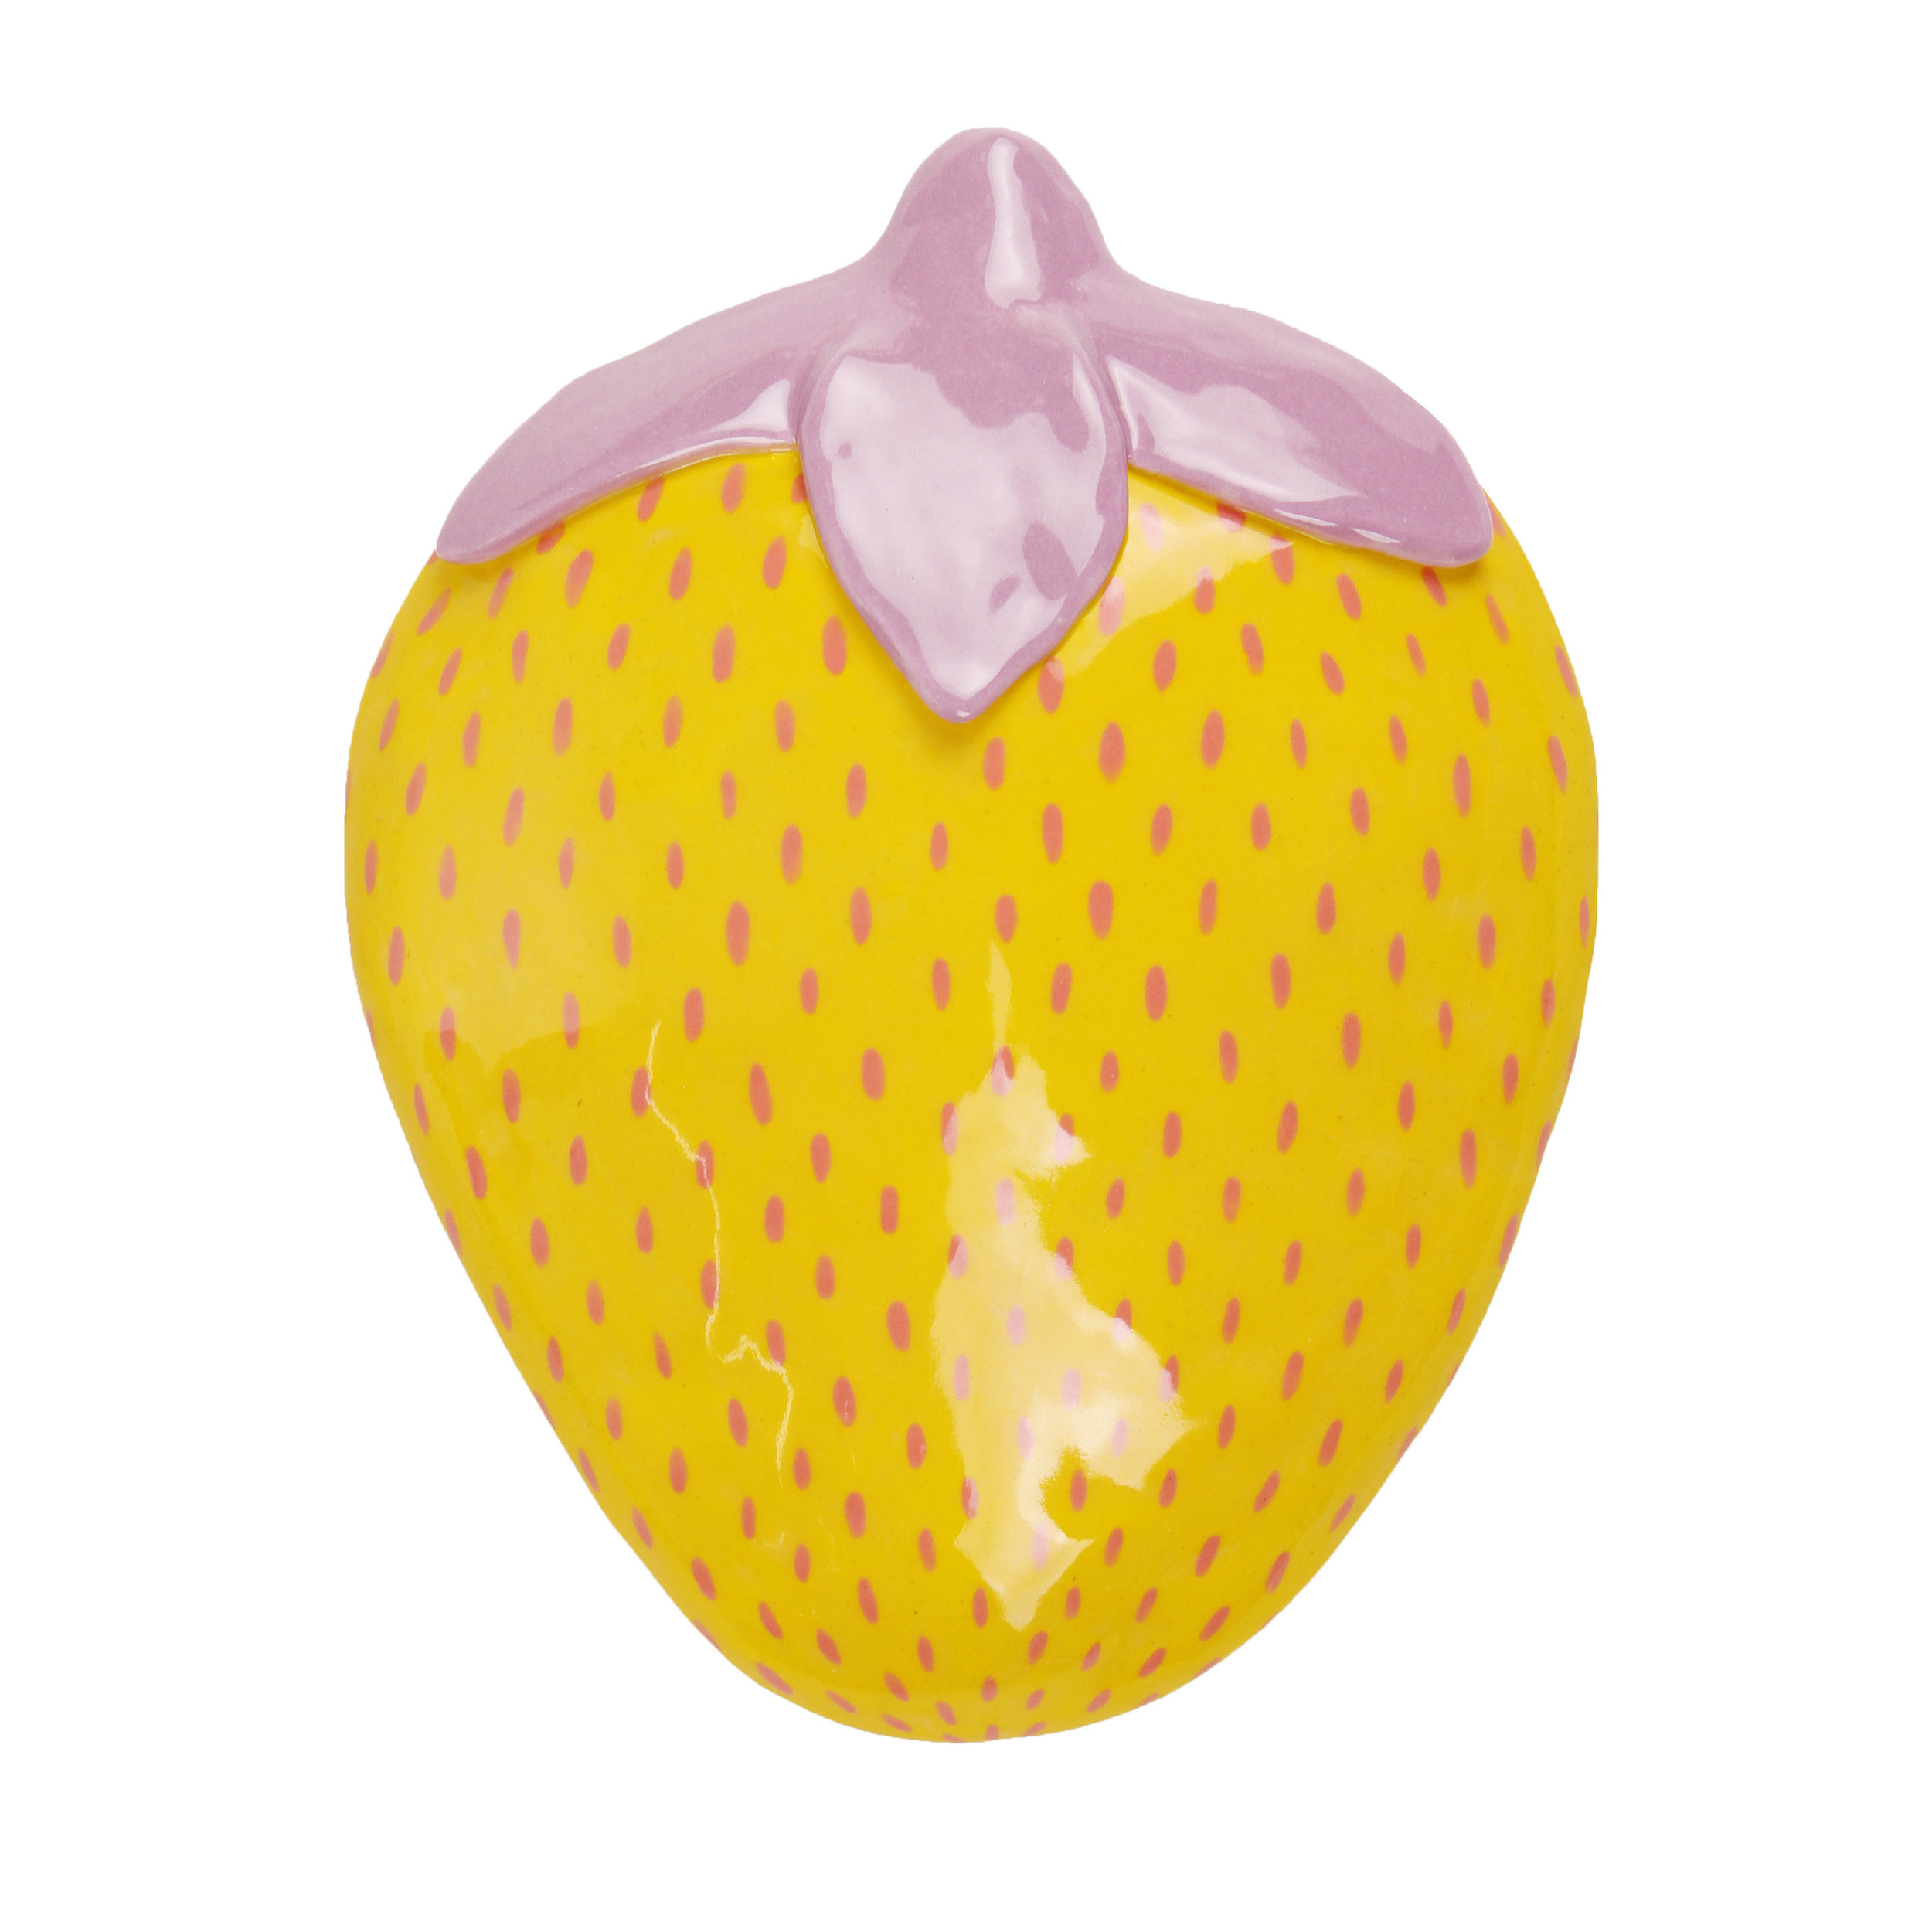 13_yellowstrawberry.jpg